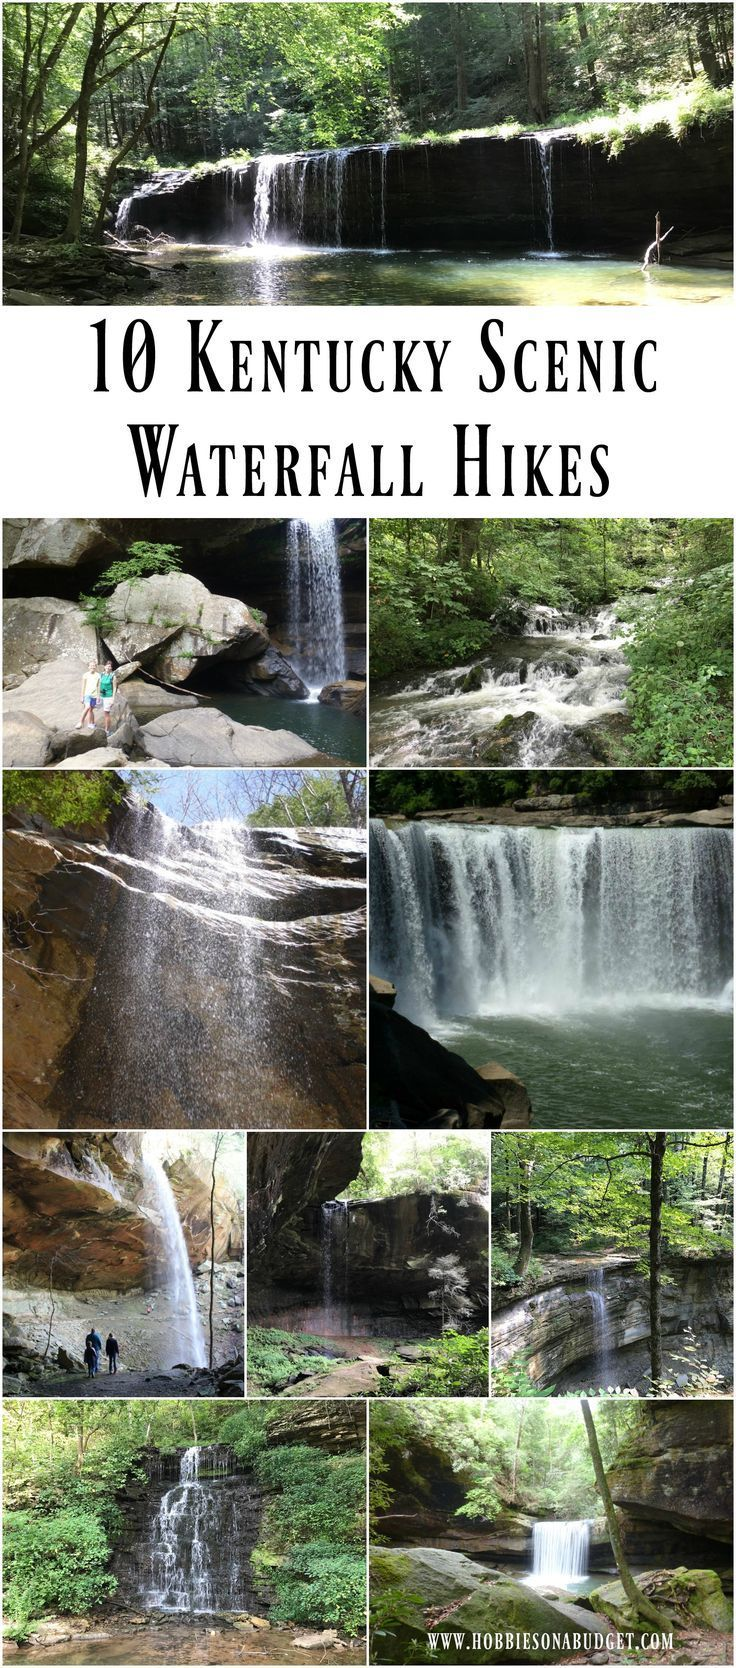 10 Kentucky Scenic Waterfall Hikes Kentucky Vacation Waterfall